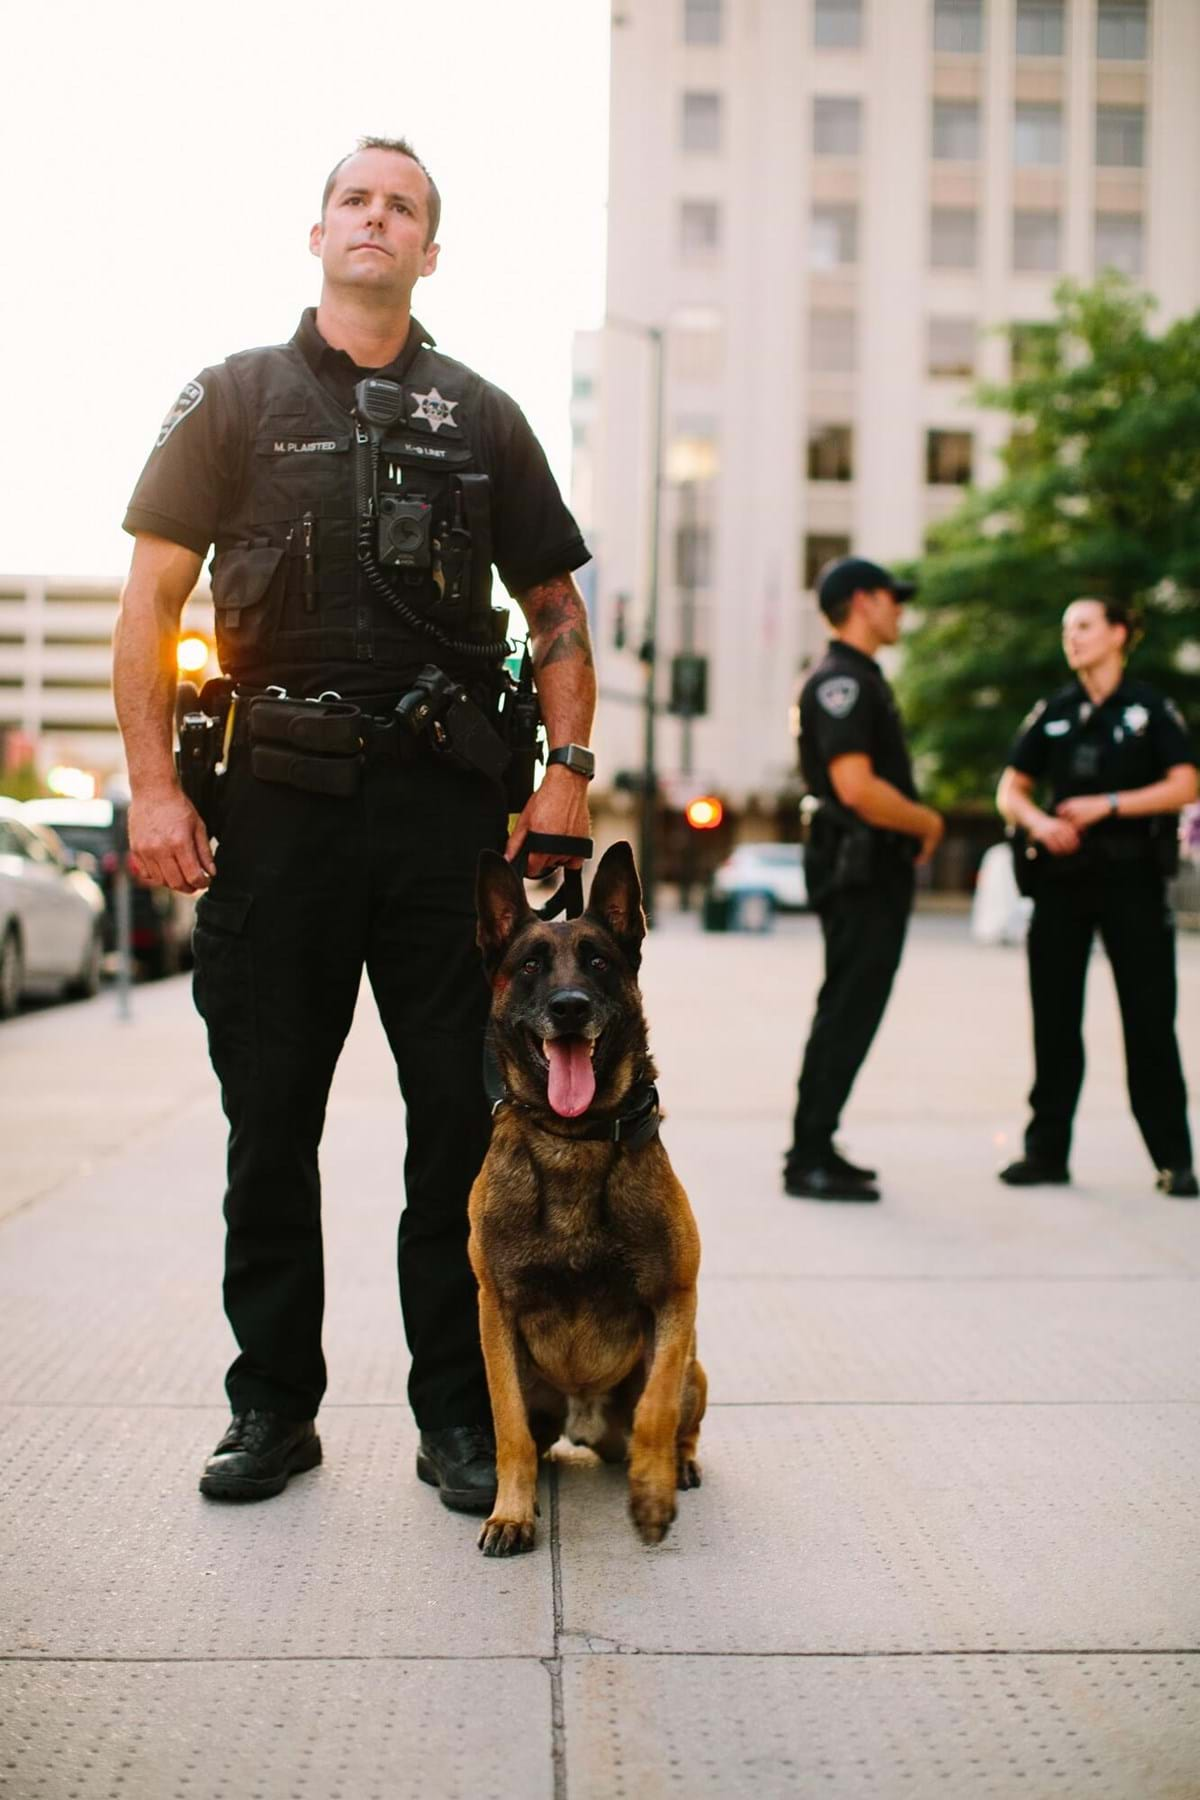 Officer with K9 unit